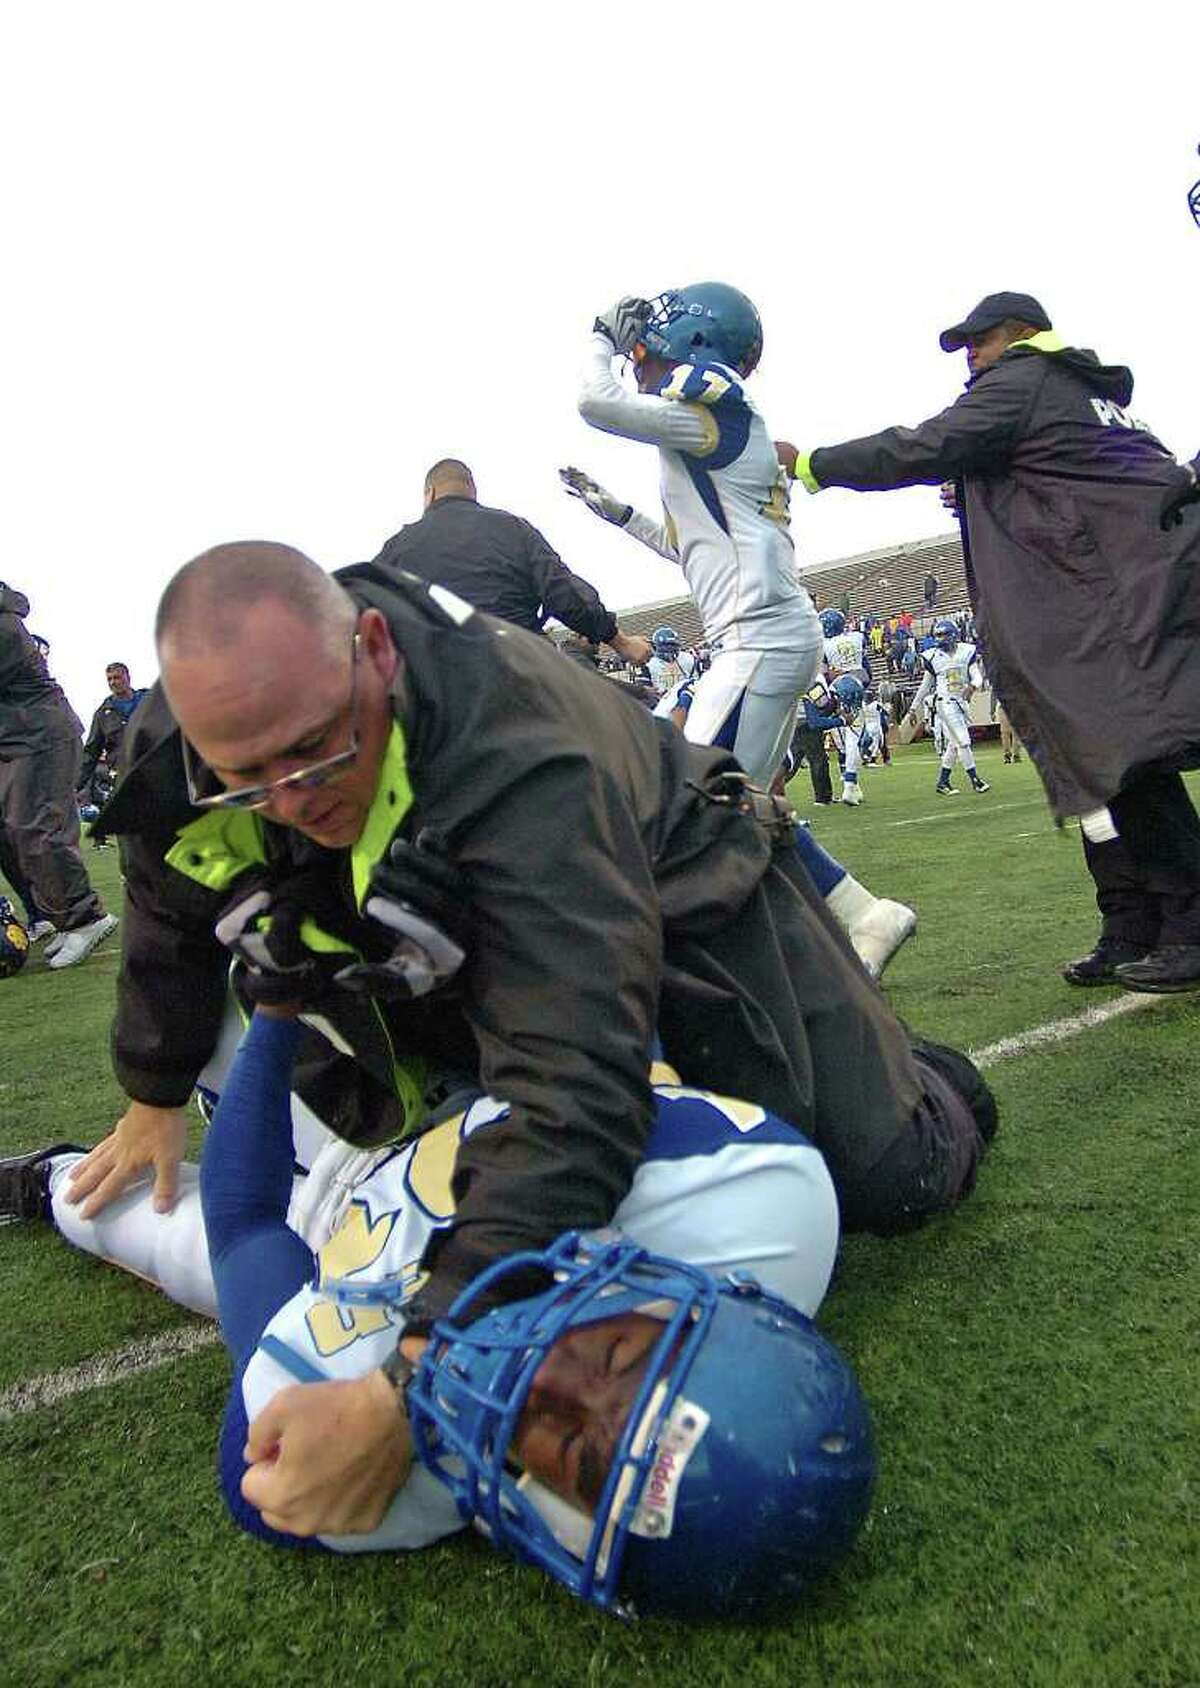 An Ozen player is pinned down by a security officer during a massive brawl following the Panther's game with La Marque at Stallworth Stadium on Saturday. The teams collided in the free-for-all shortly after shaking hands at the end of the game. The melee followed a smaller scuffle that occurred in the fourth quarter. Photo taken Saturday, November 26, 2011 Guiseppe Barranco/The Enterprise